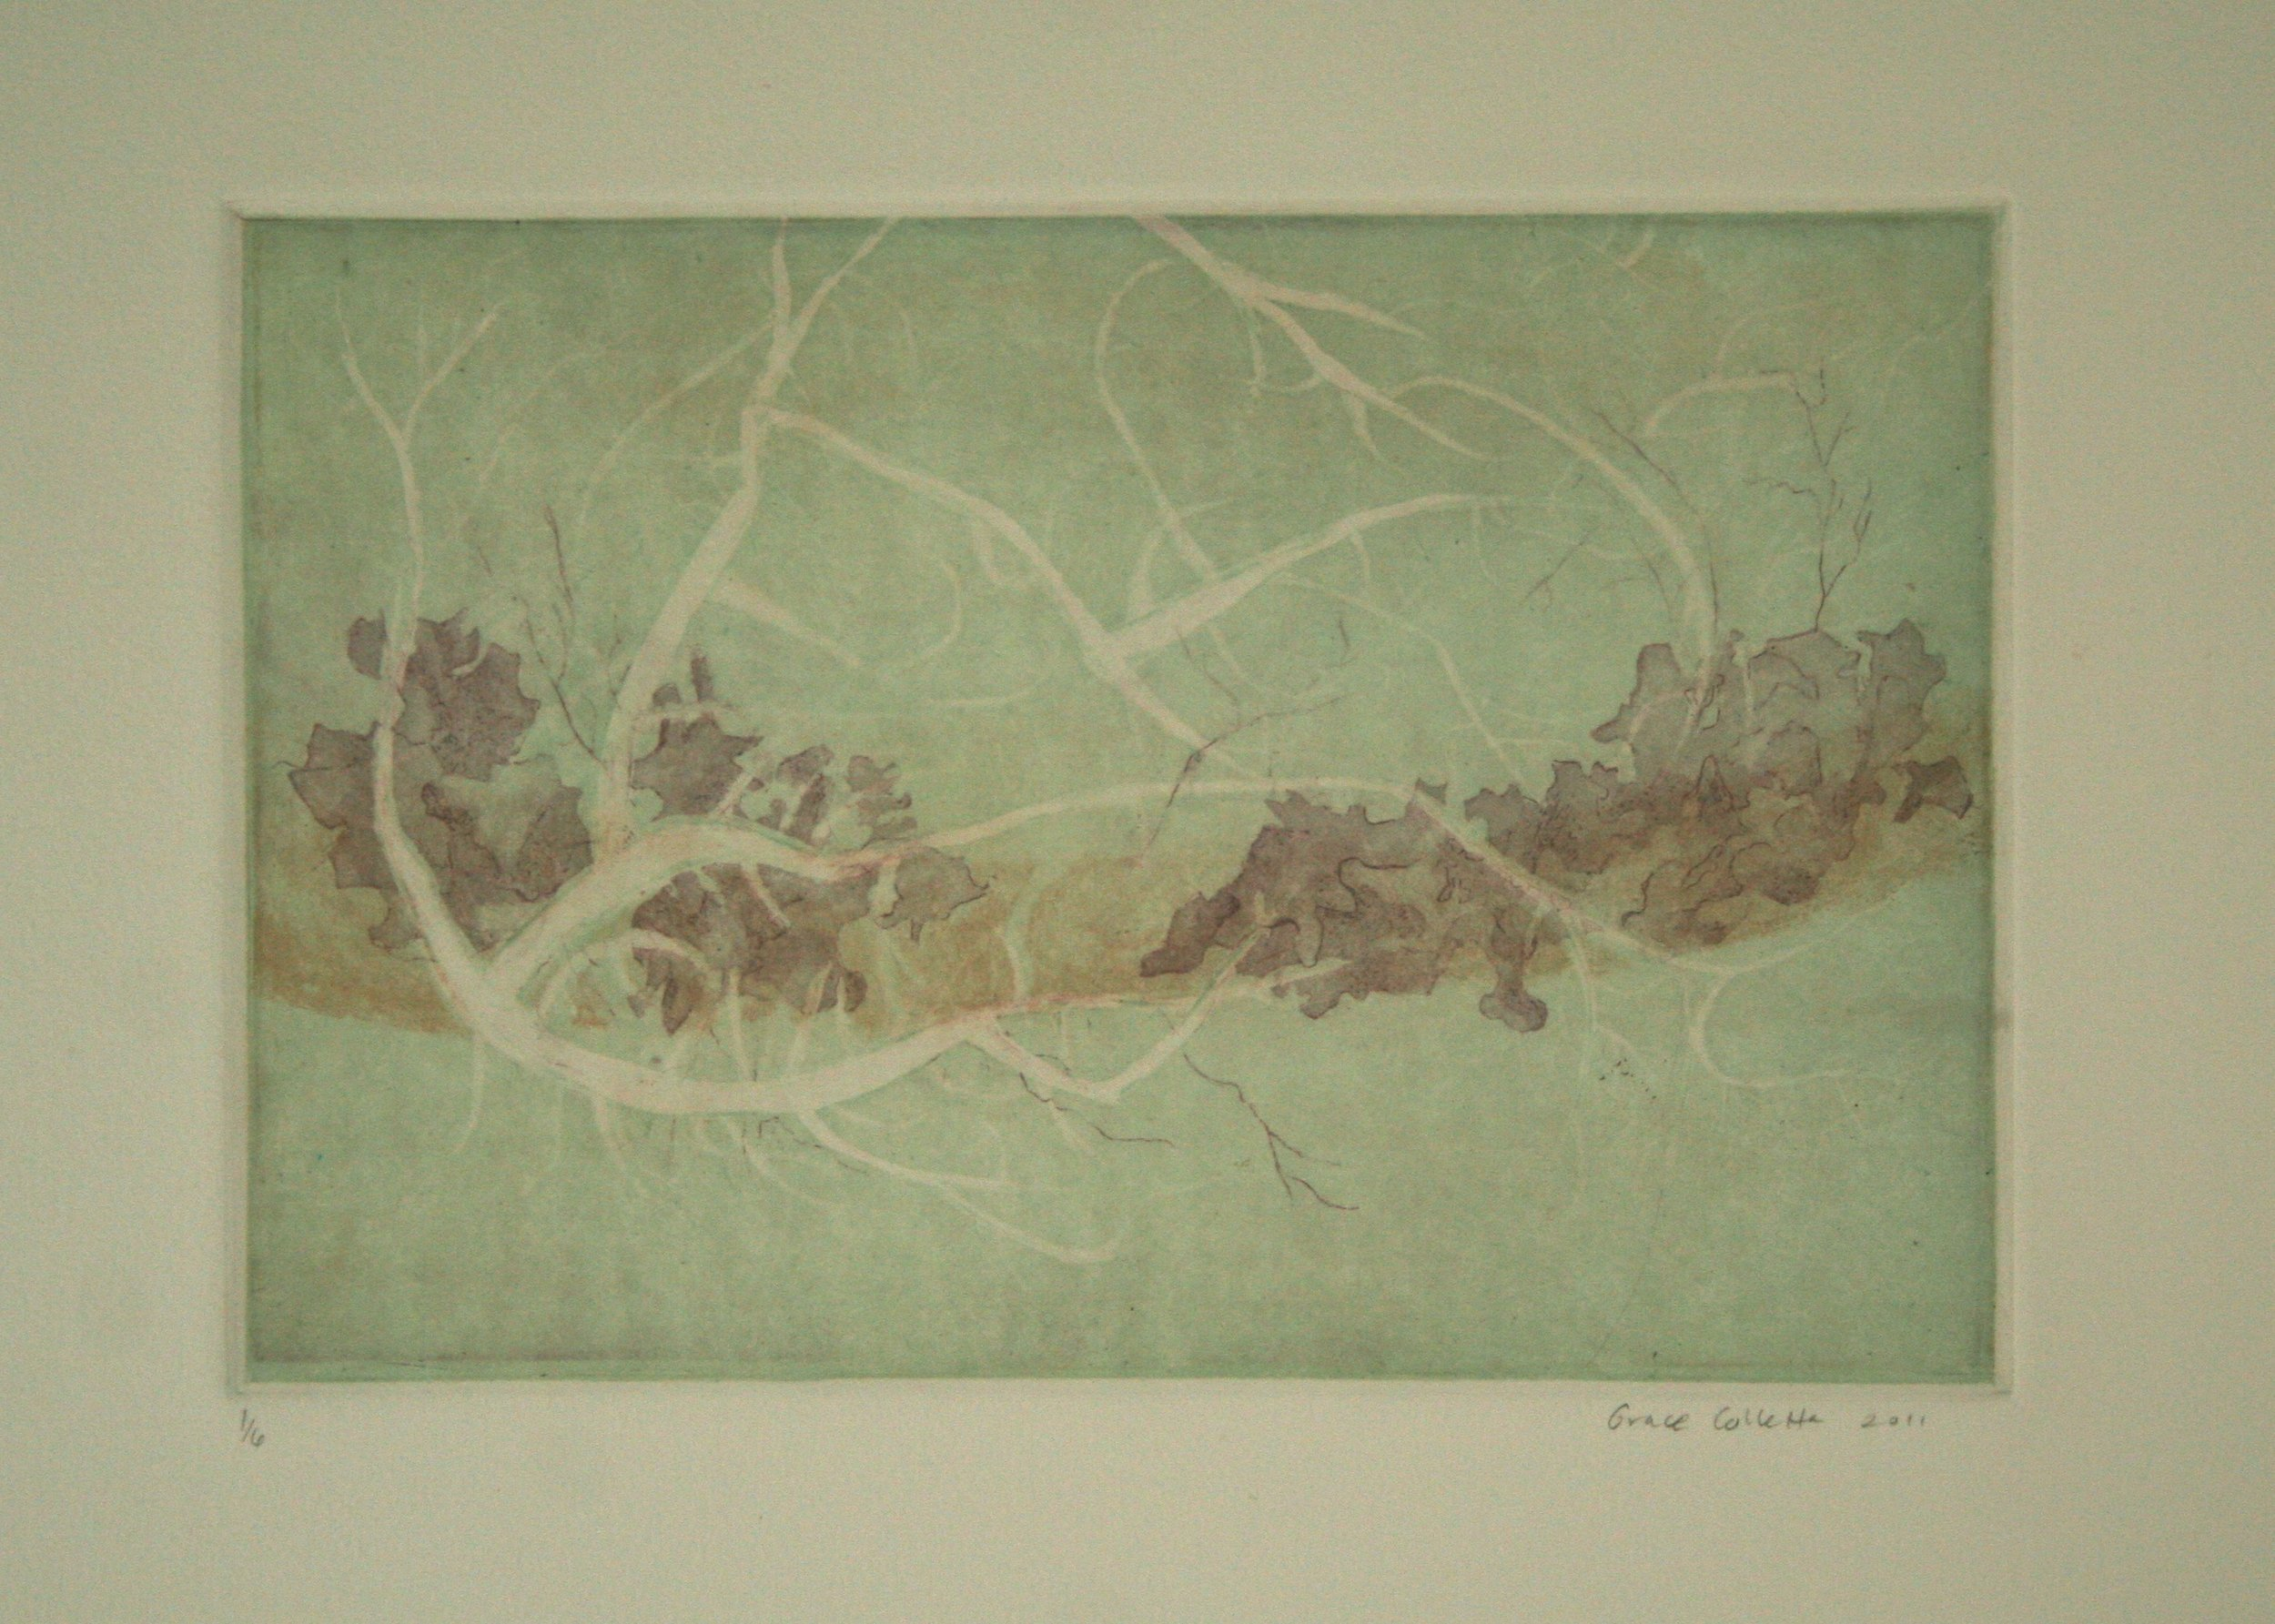 Lichen, etching, 6 x 9 in, 2011